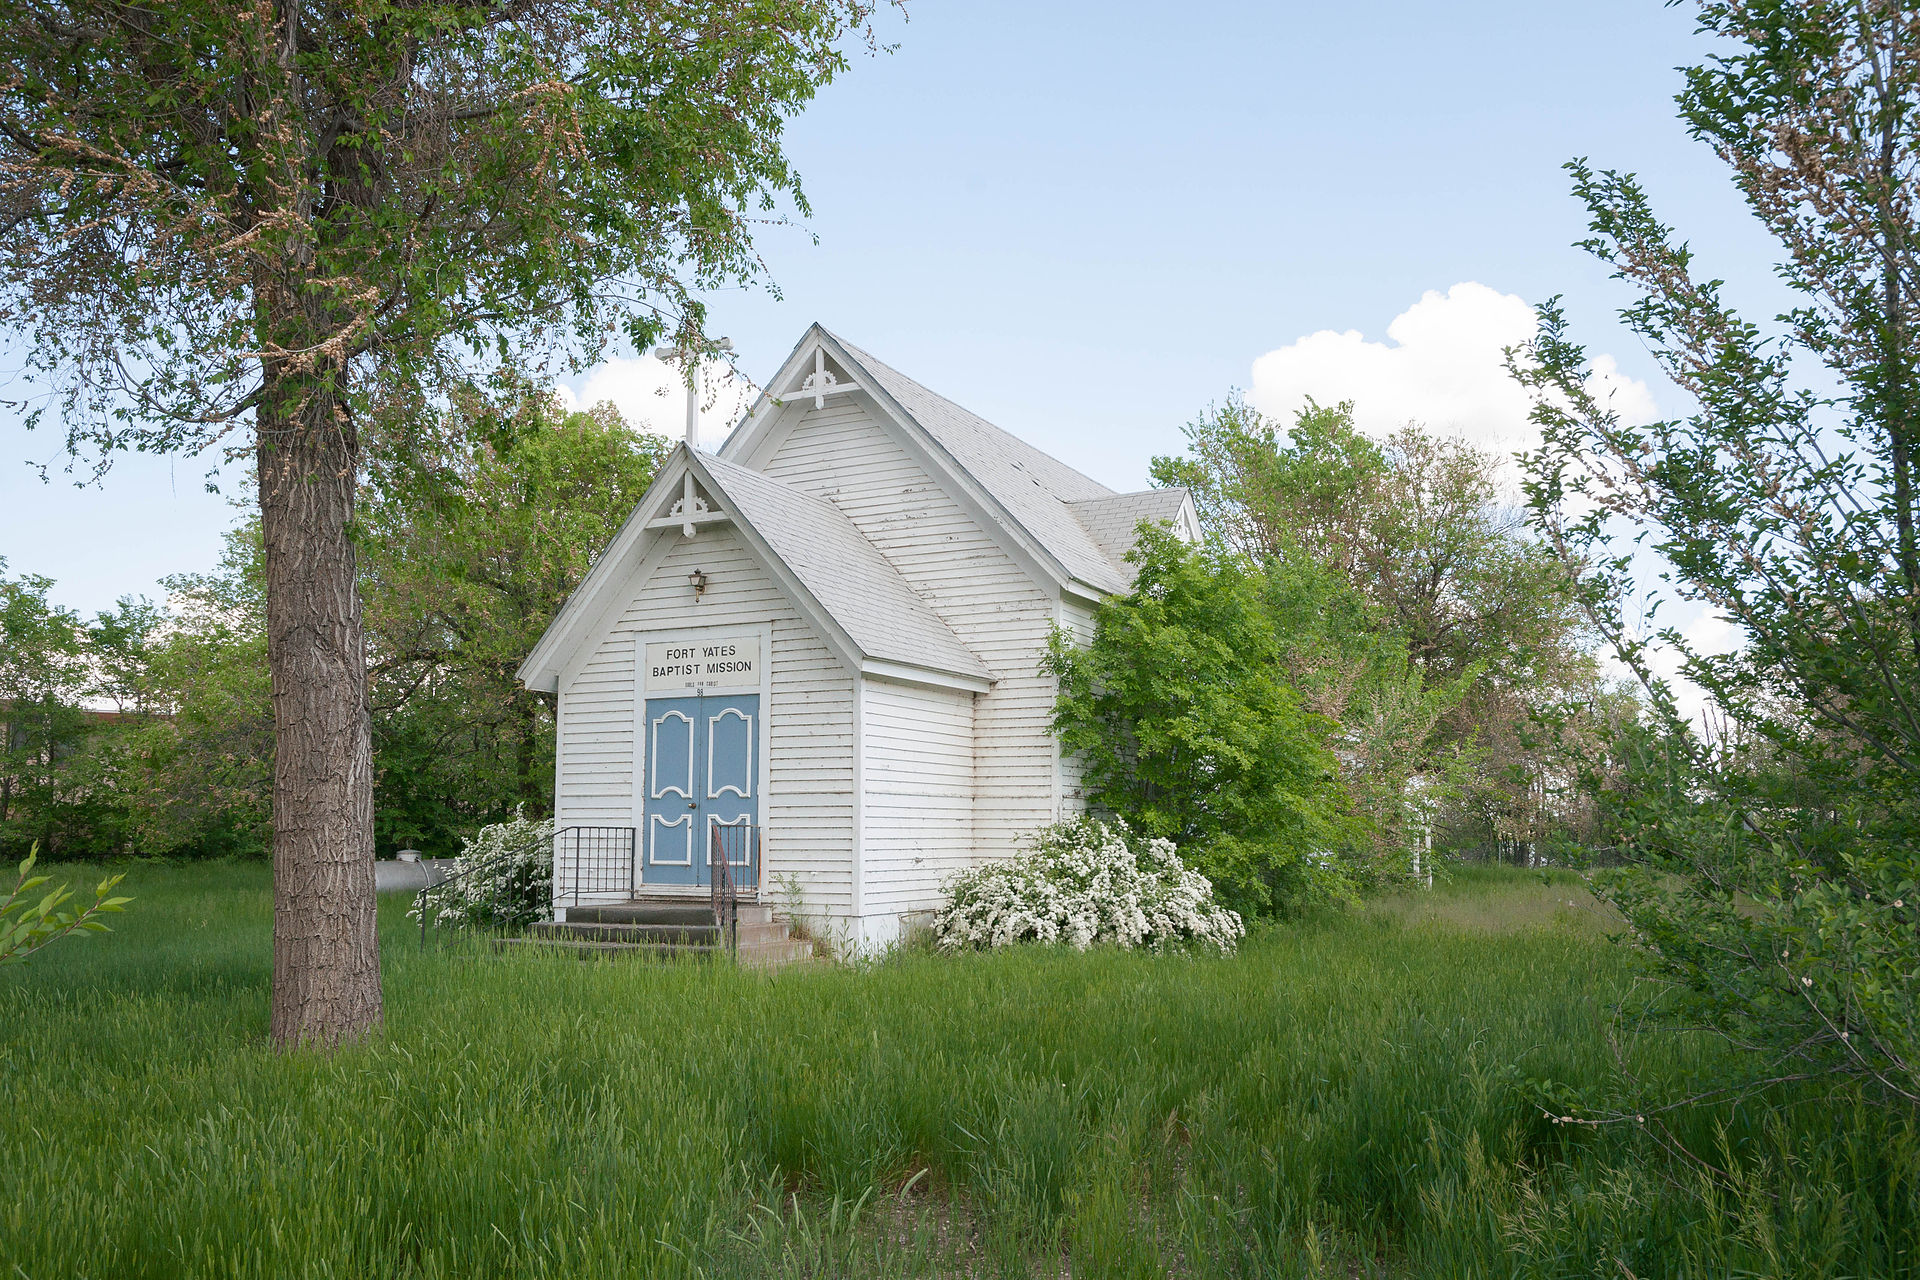 fort yates Find homes for sale and real estate in fort yates, nd at realtorcom® search and filter fort yates homes by price, beds, baths and property type.